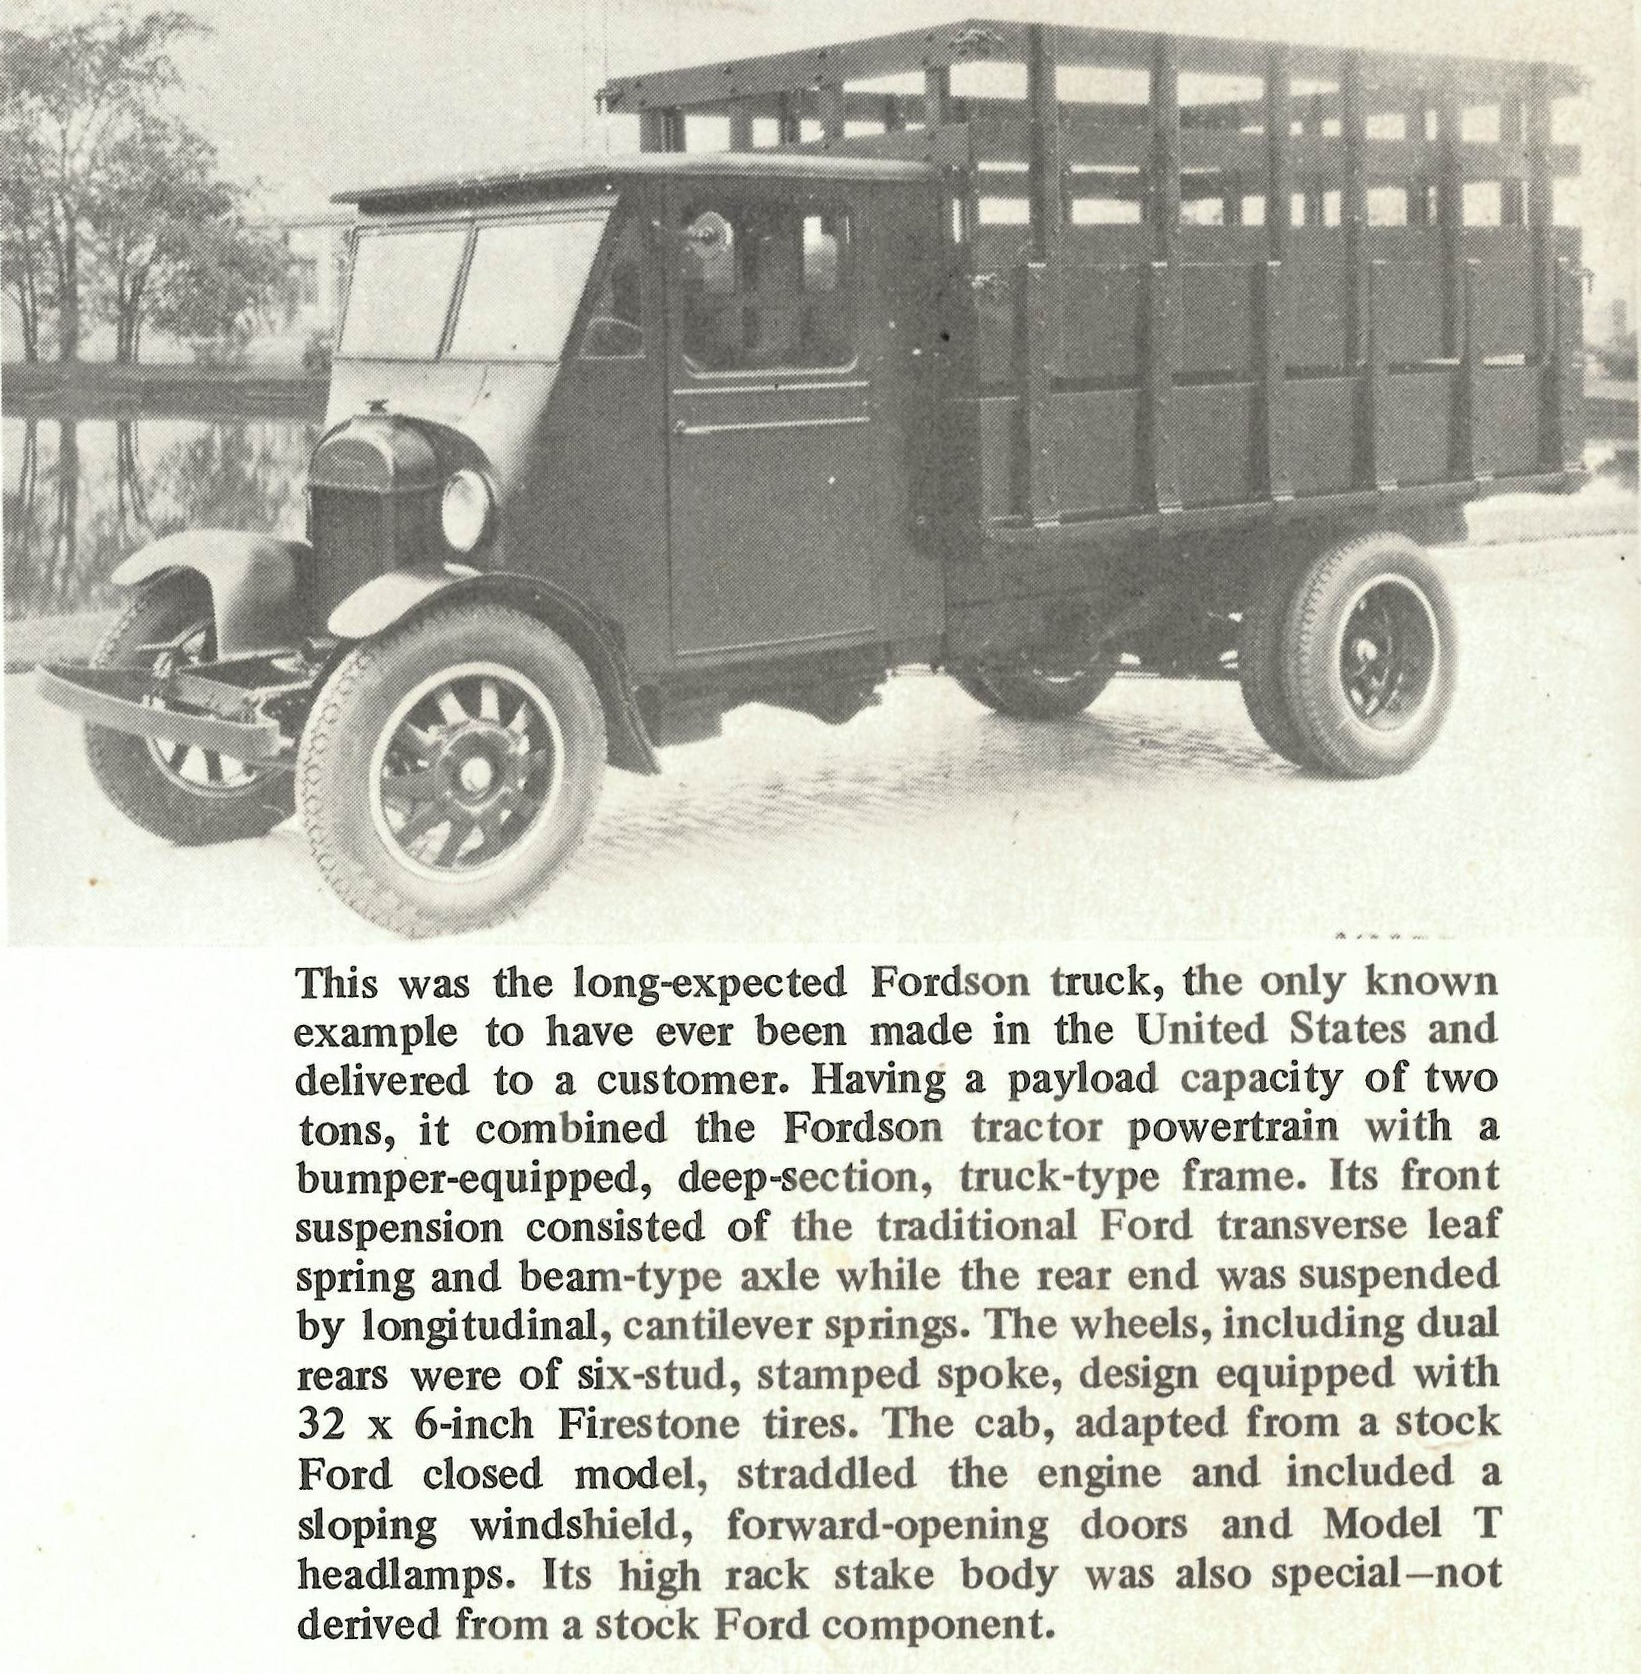 Fordson two ton heavy duty truck prototype